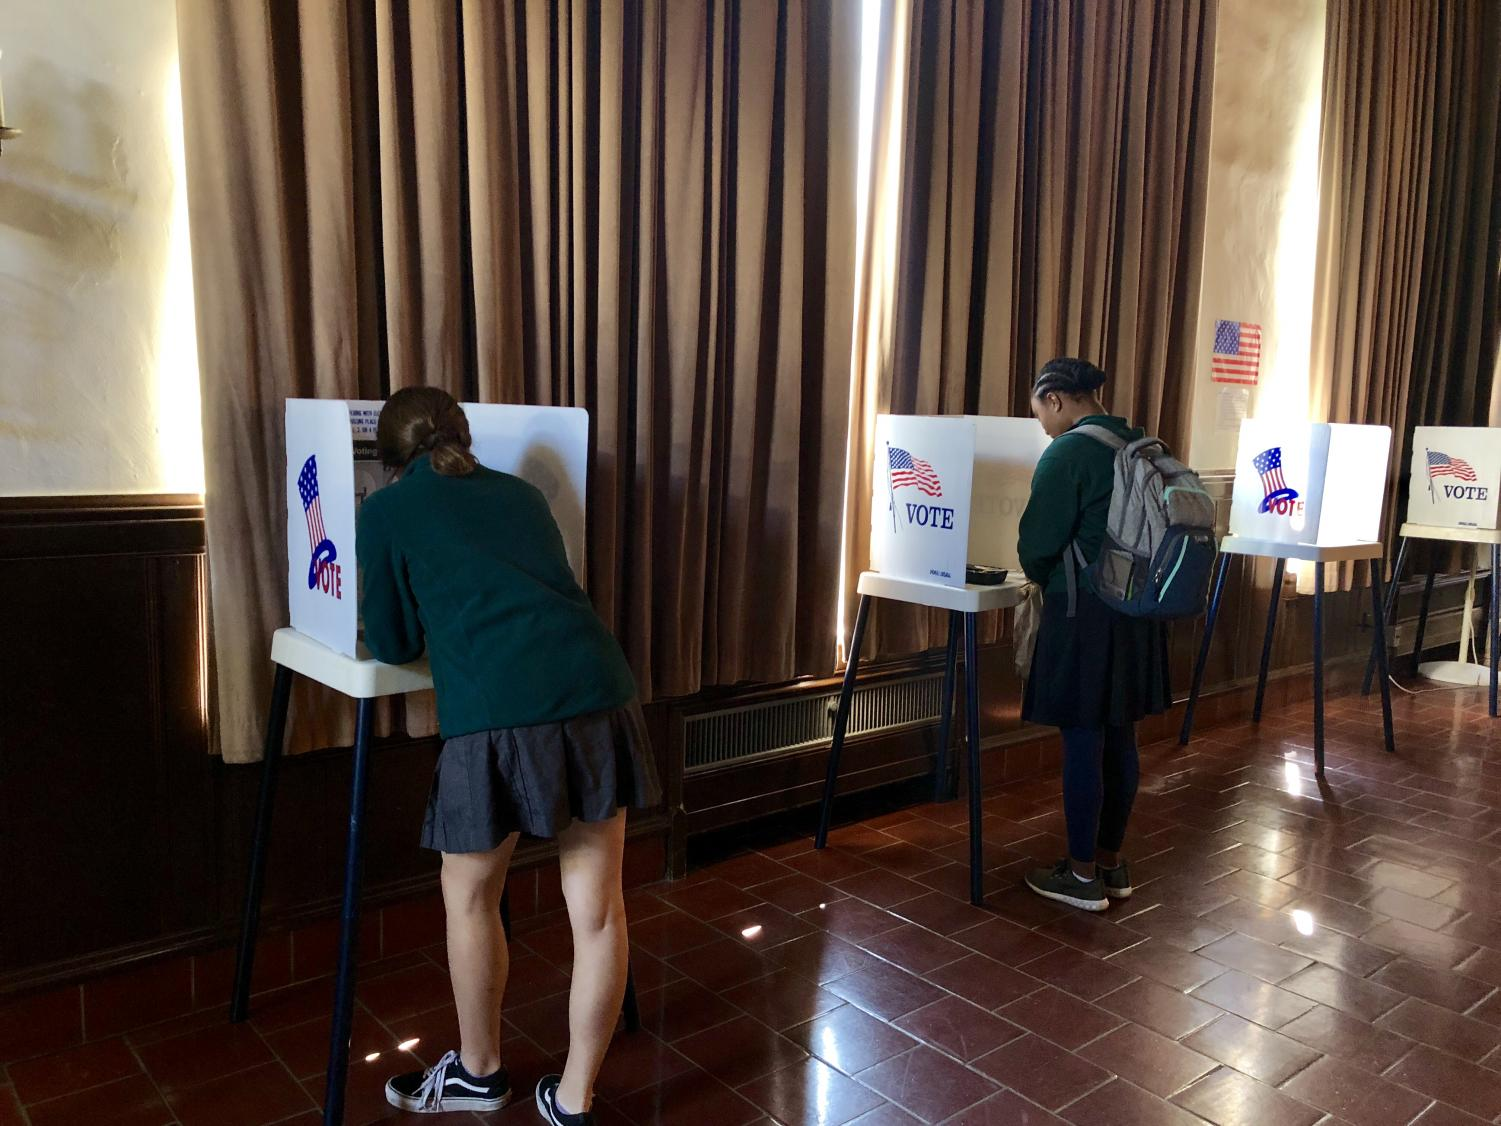 Aviva Intveld '19 and Lena Jones '20 cast their votes at today's mock election.  Students had the opportunity to learn about and vote on Proposition 10.